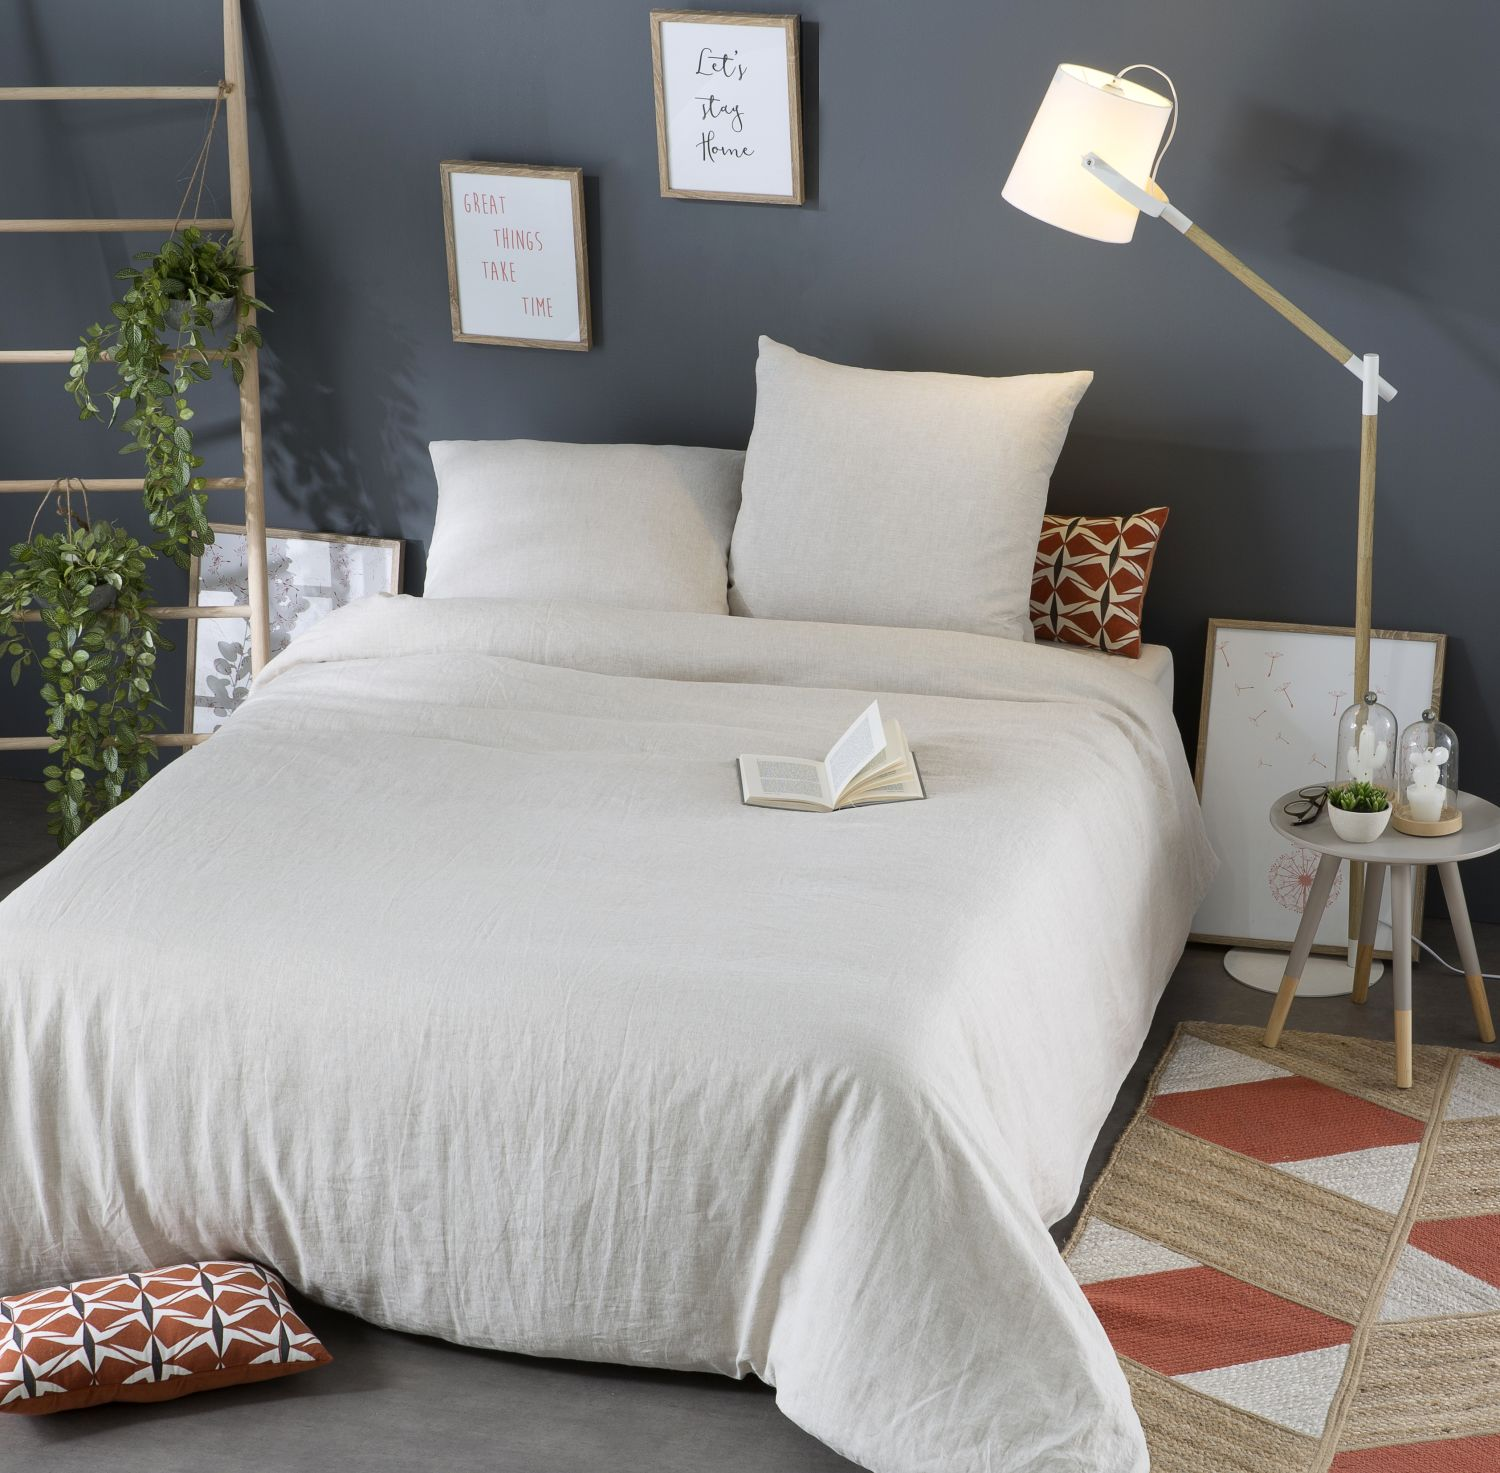 bettw schegarnitur aus gewaschenem leinen beige 220x240 maisons du monde. Black Bedroom Furniture Sets. Home Design Ideas